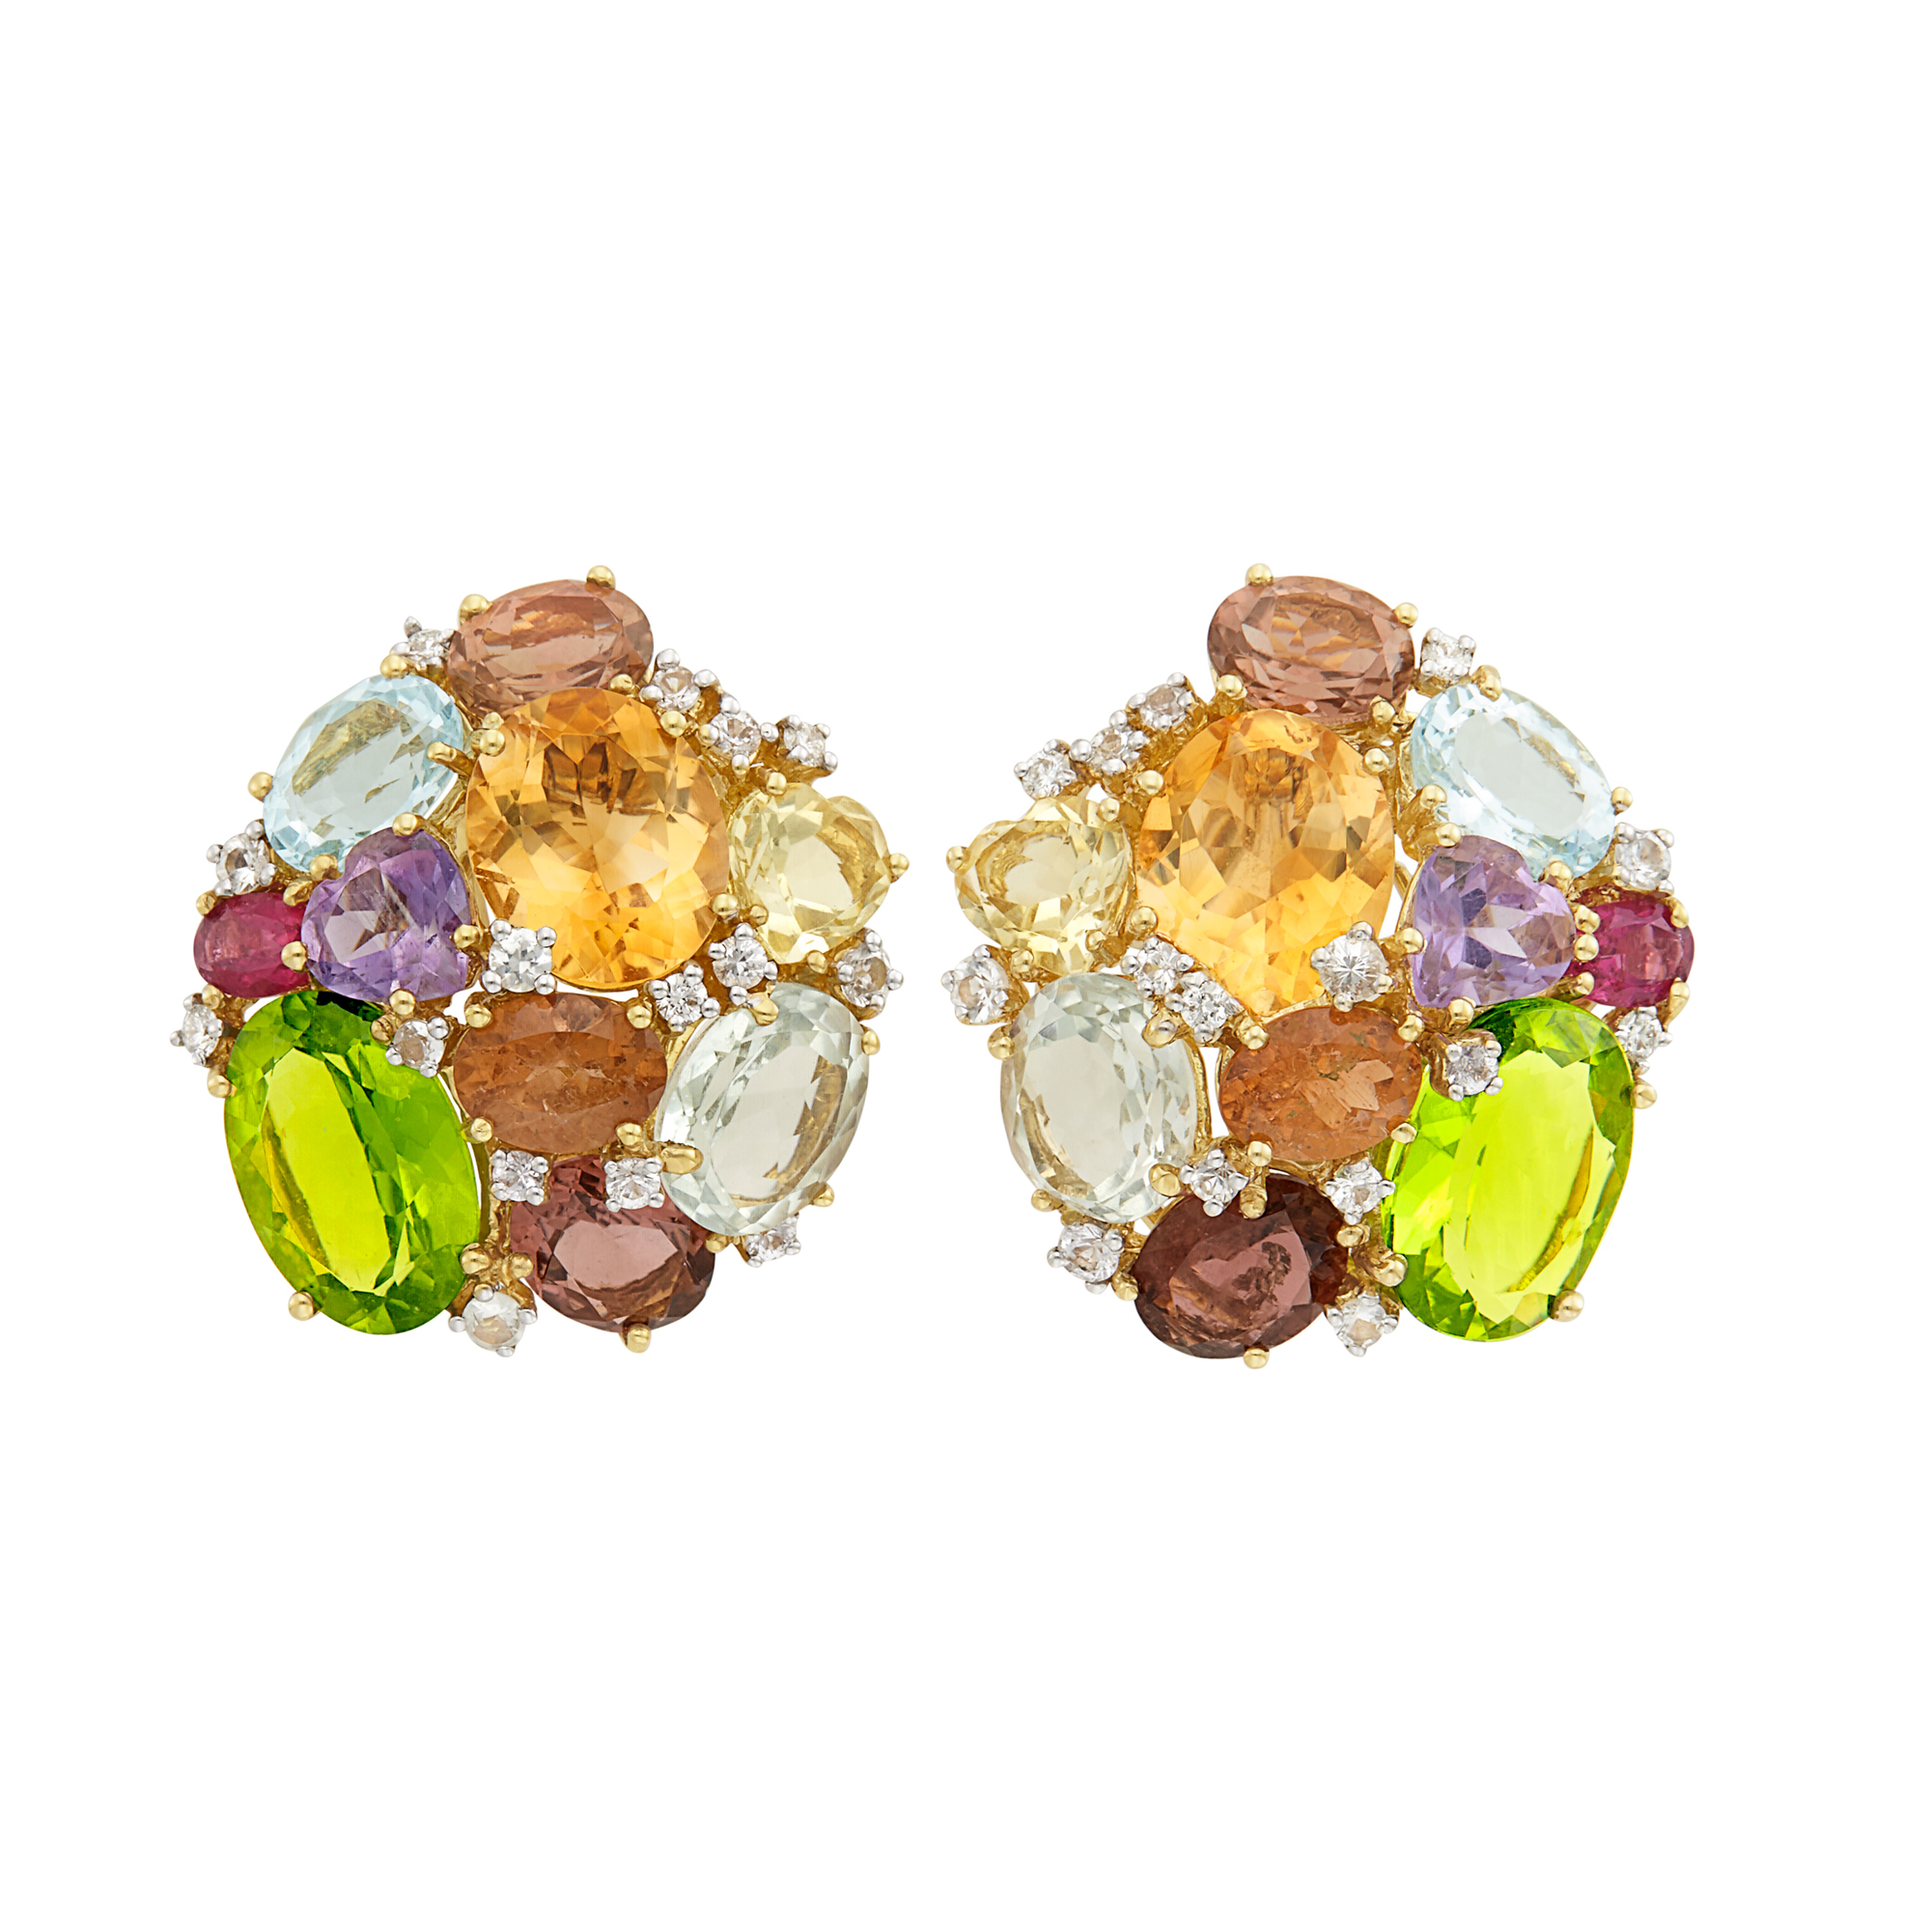 Lot image - Pair of Gold, Gem-Set, White Sapphire and Diamond Cluster Earclips